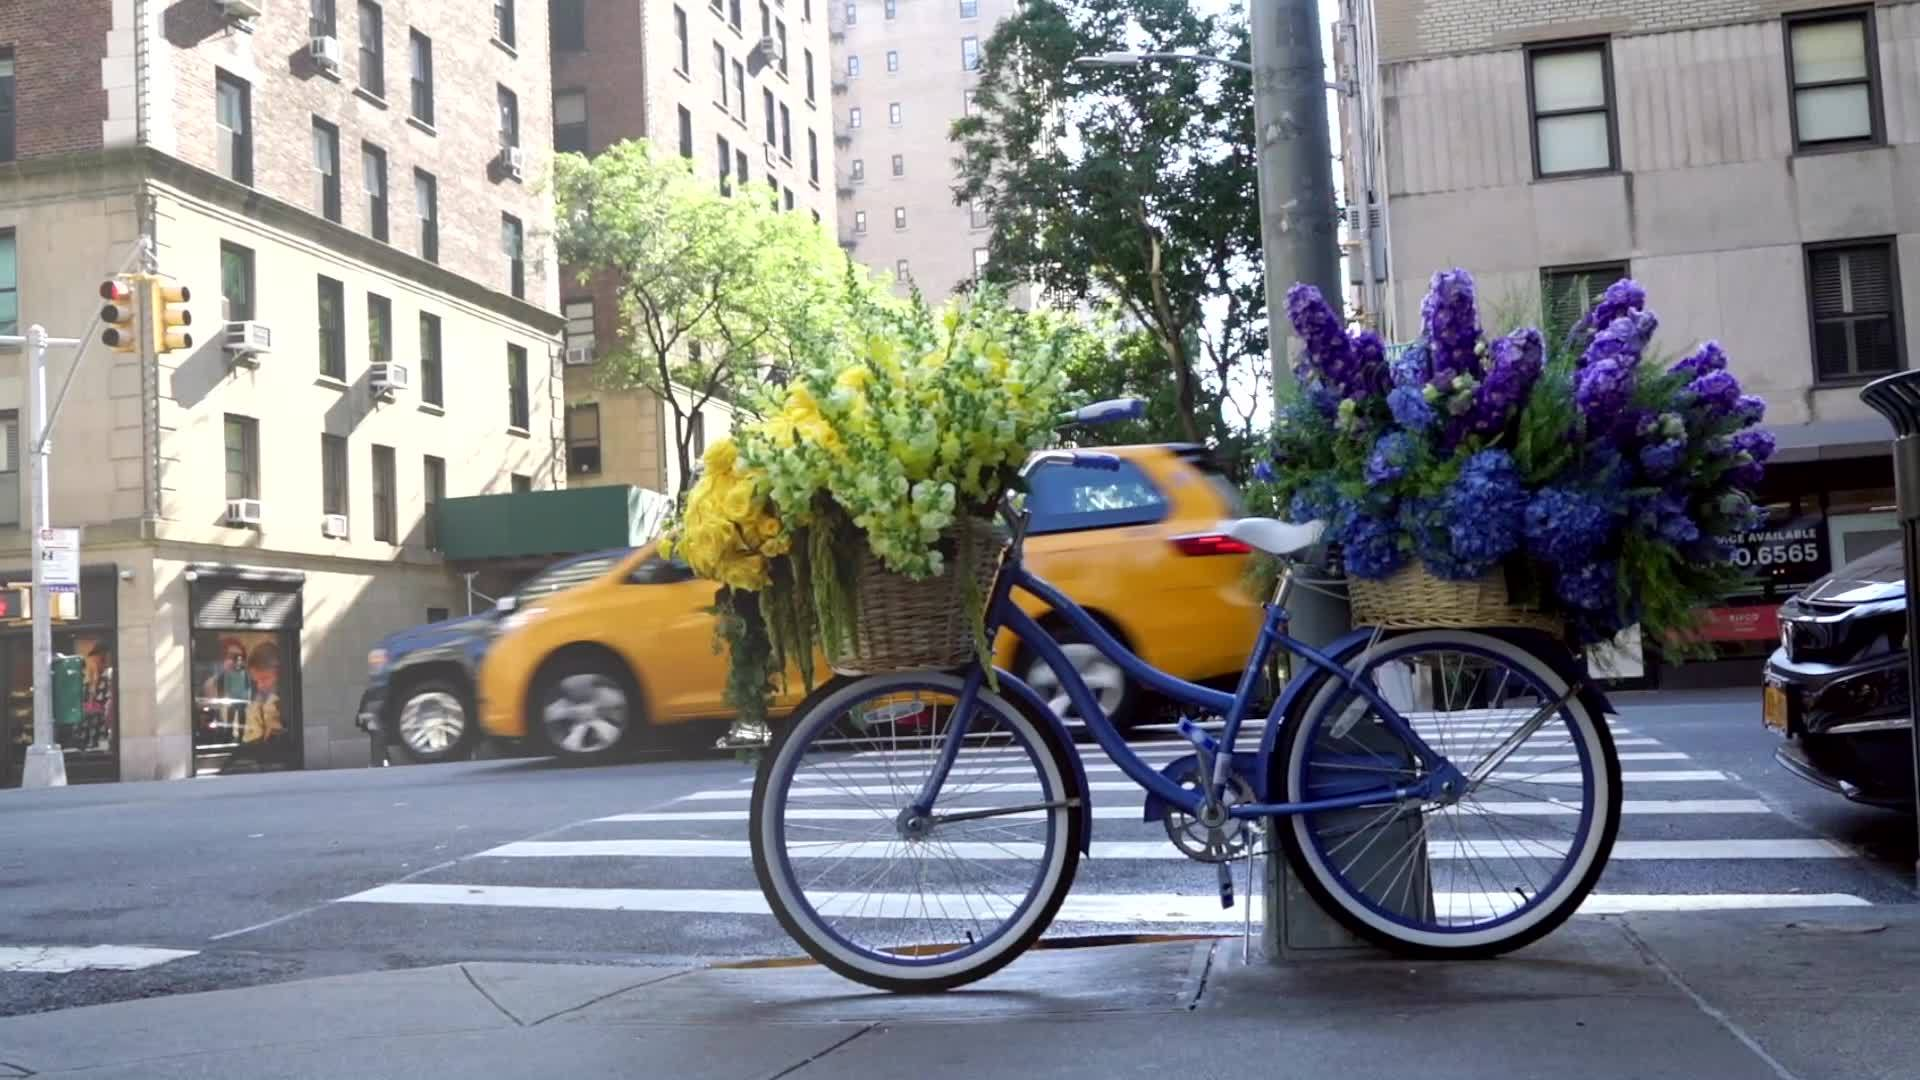 blue bicycle with flowers on both the front and back wheels